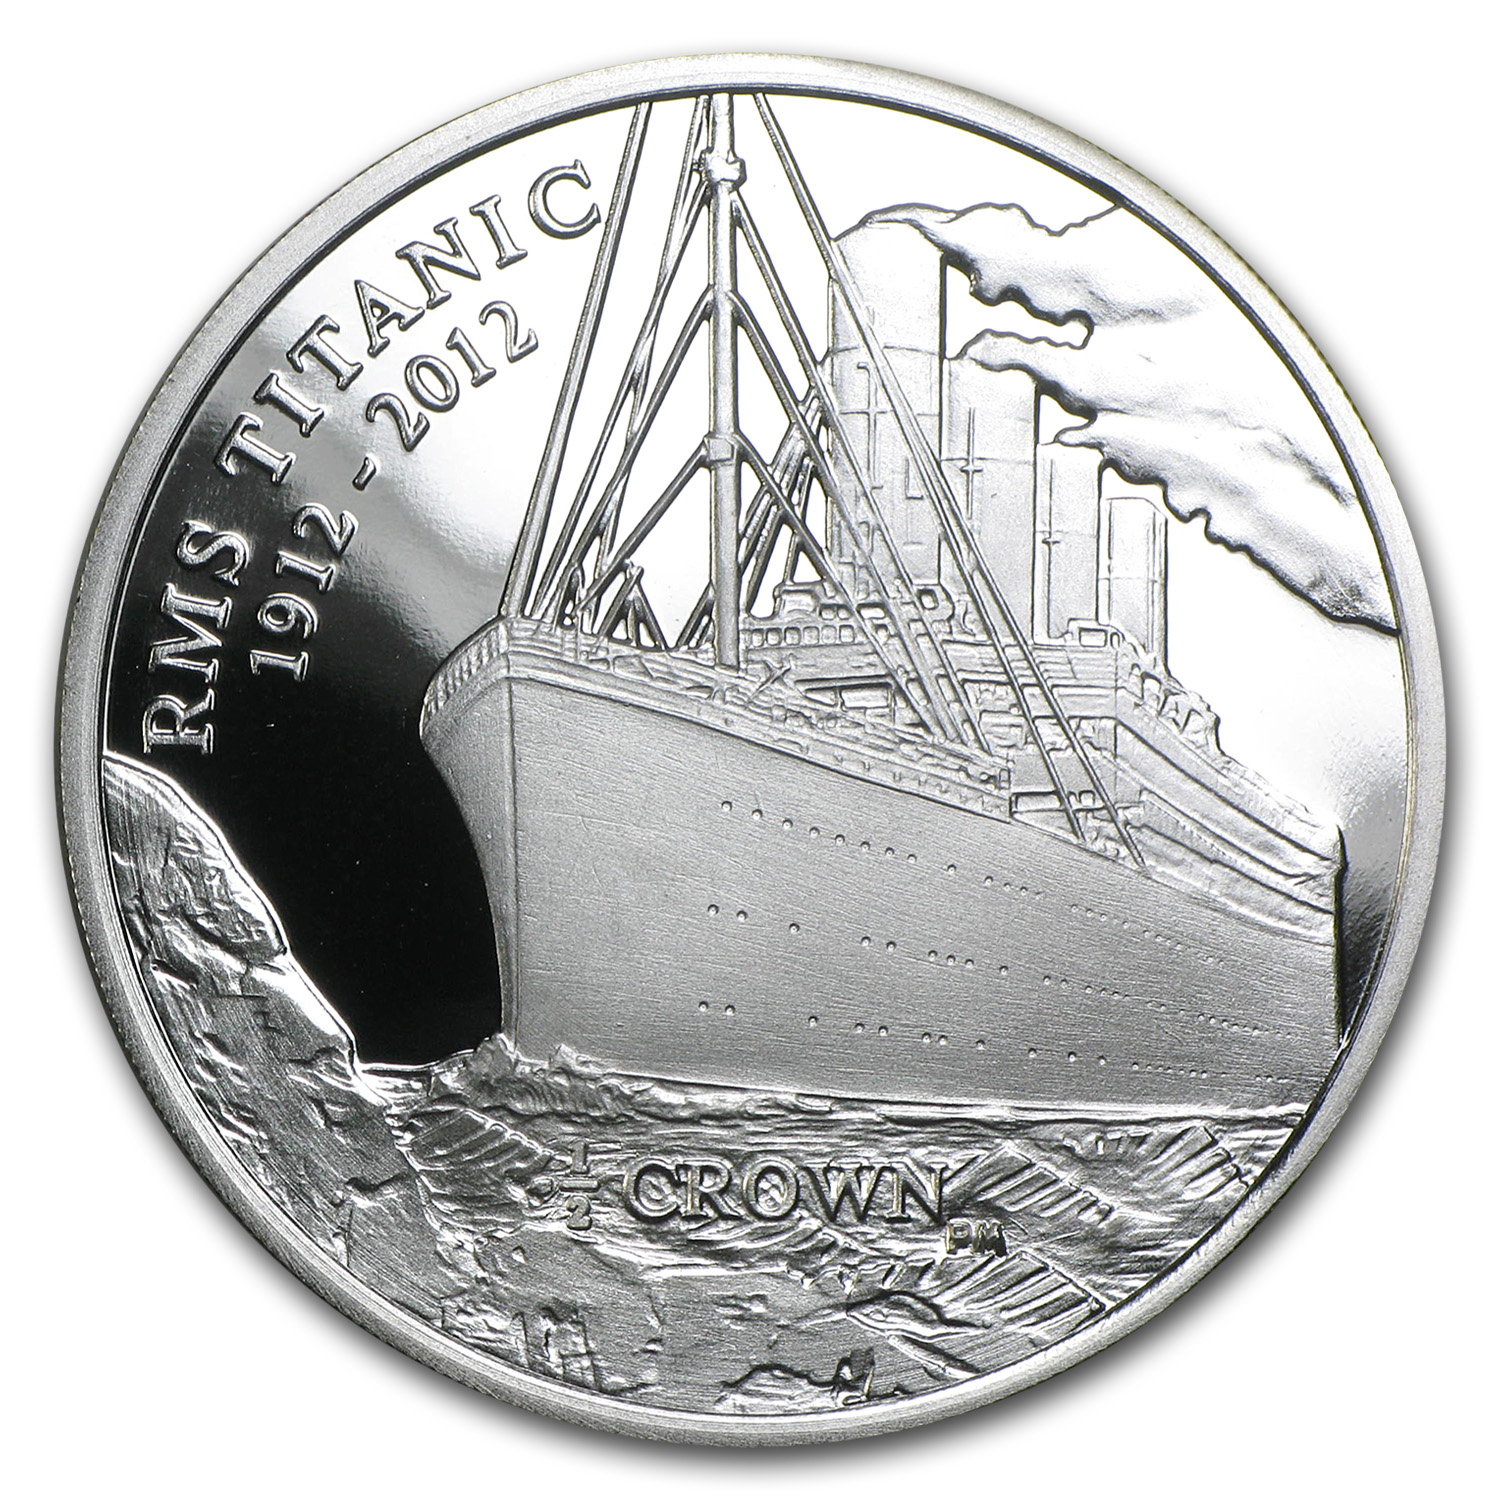 2012 Isle of Man 1/2 Crown Silver Titanic at Sea Proof